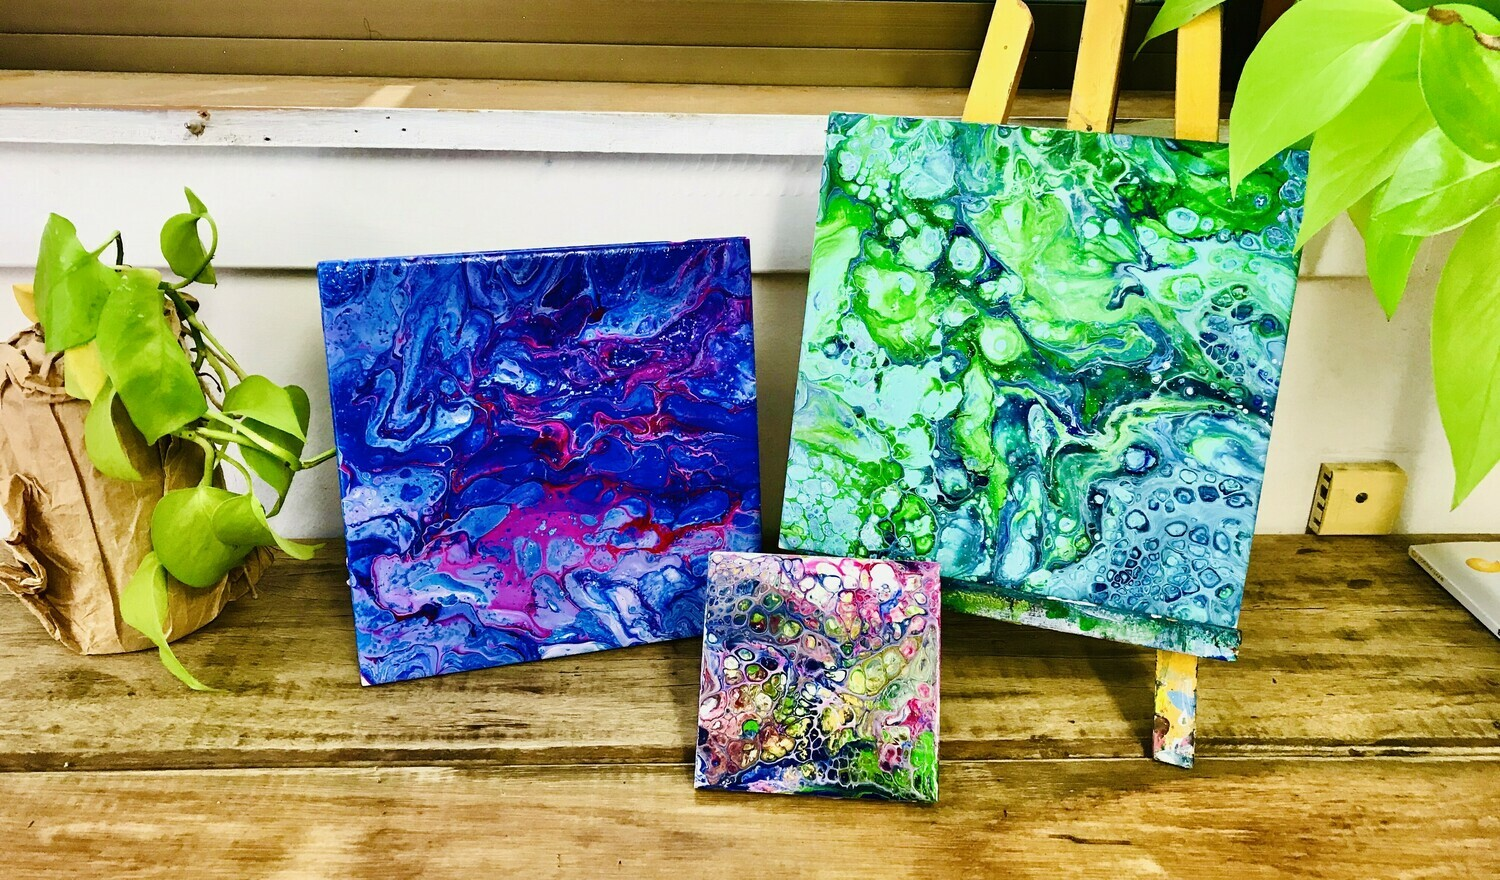 Acrylic pouring workshop $50 - $75 - Wednesday 1 July 11am-1pm